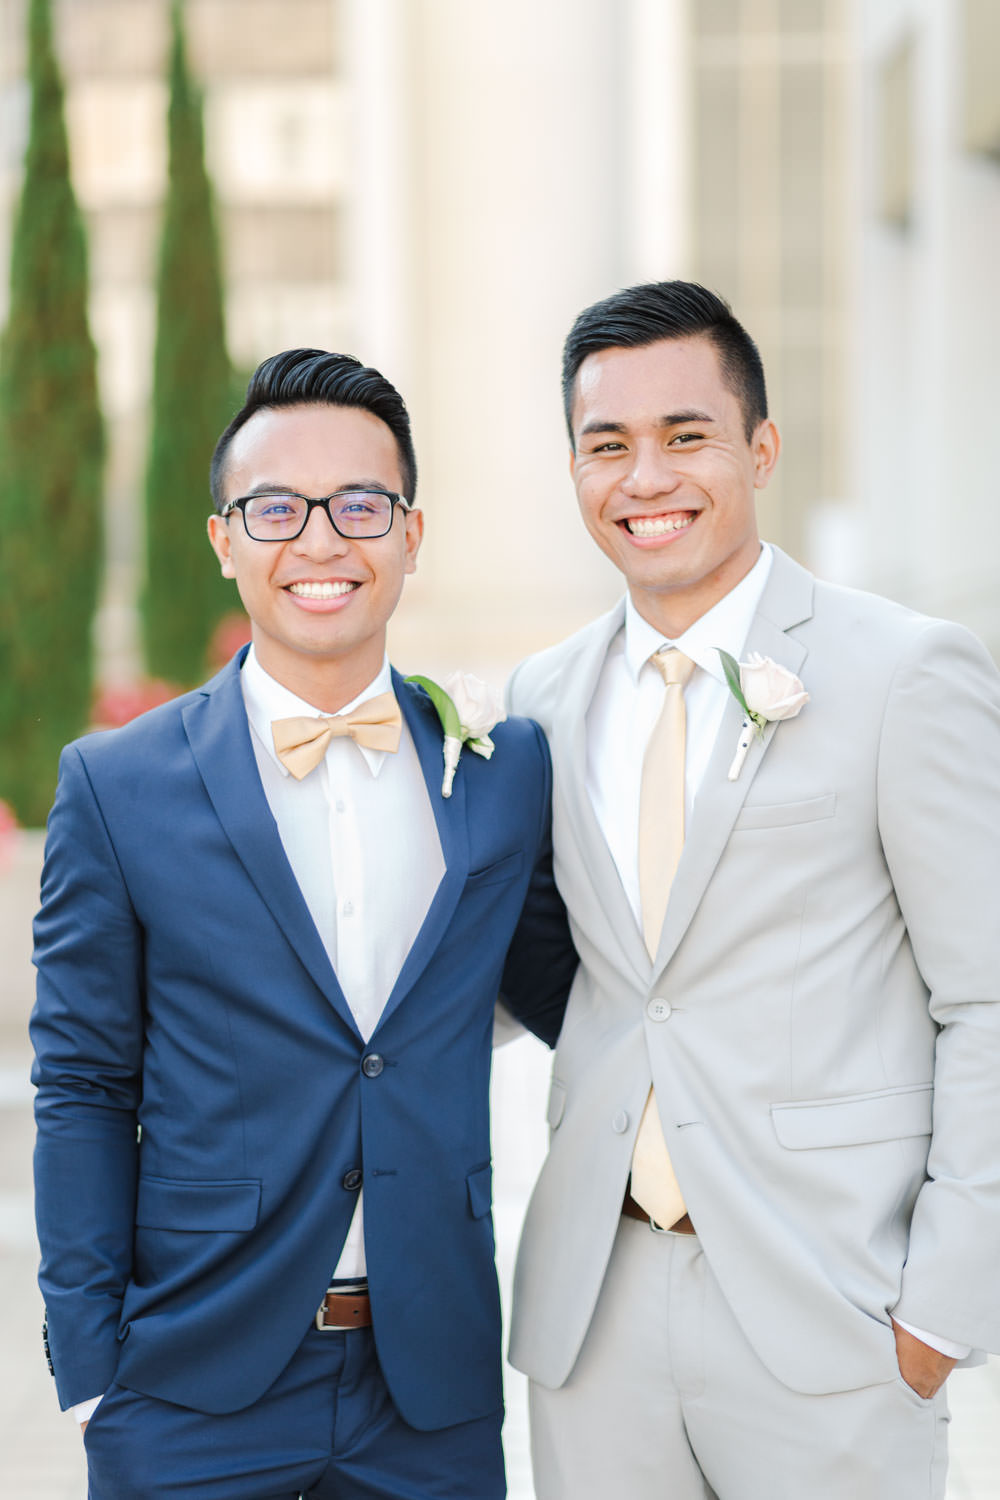 Groomsmen in grey suits and groom in navy suit, Cavin Elizabeth Photography